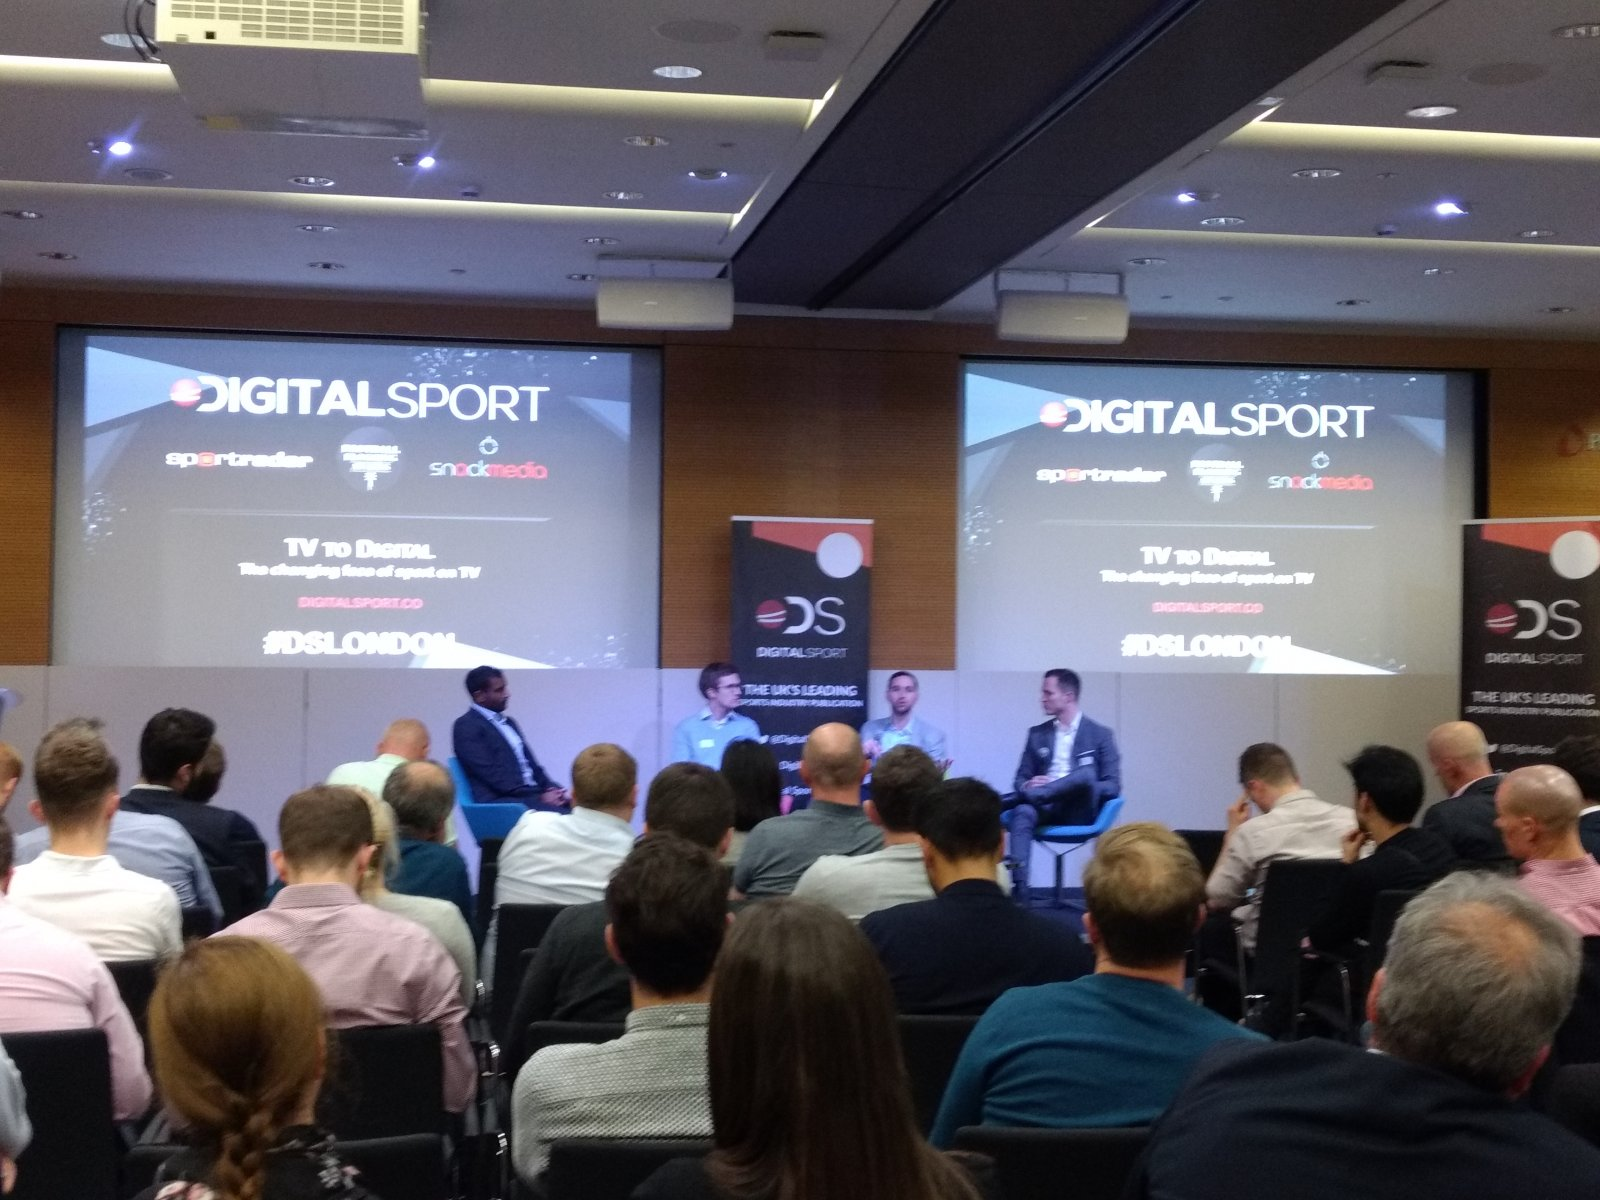 Digital Sport London - November event on OTT